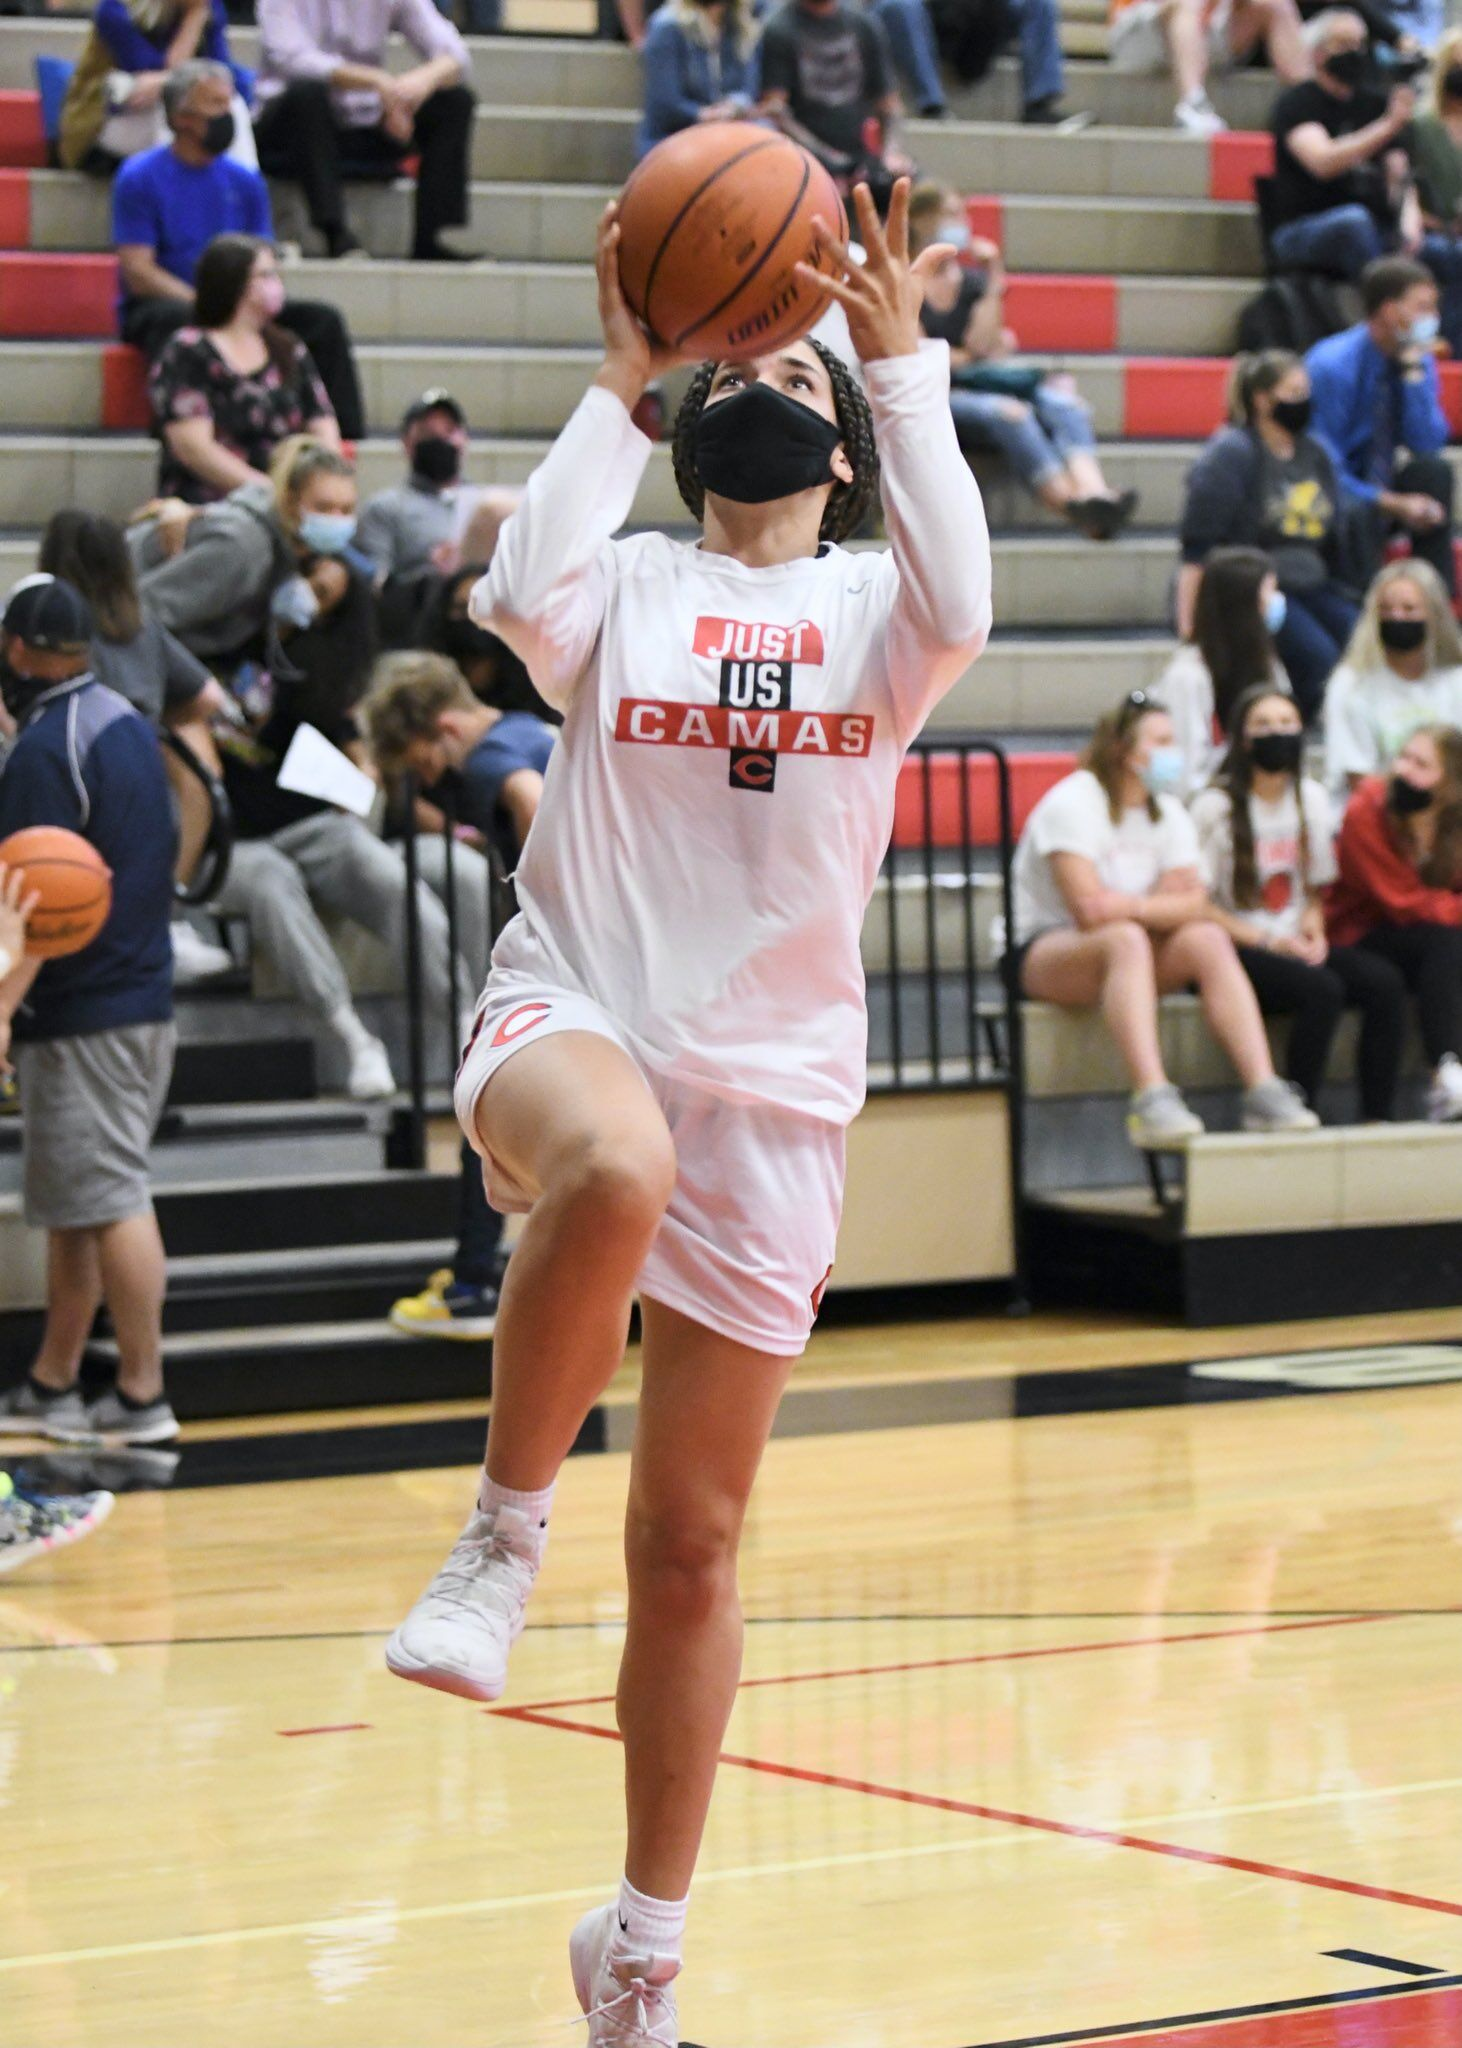 Jalena Carlisle is one of three senior members of the Camas basketball team to have welcomed a young wave of talent.  Coach Scott Thompson said Carlisle, Faith Bergstrom and Katelynn Forner have great basketball talent, but their leadership skills are even better.  Photo courtesy Kris Cavin